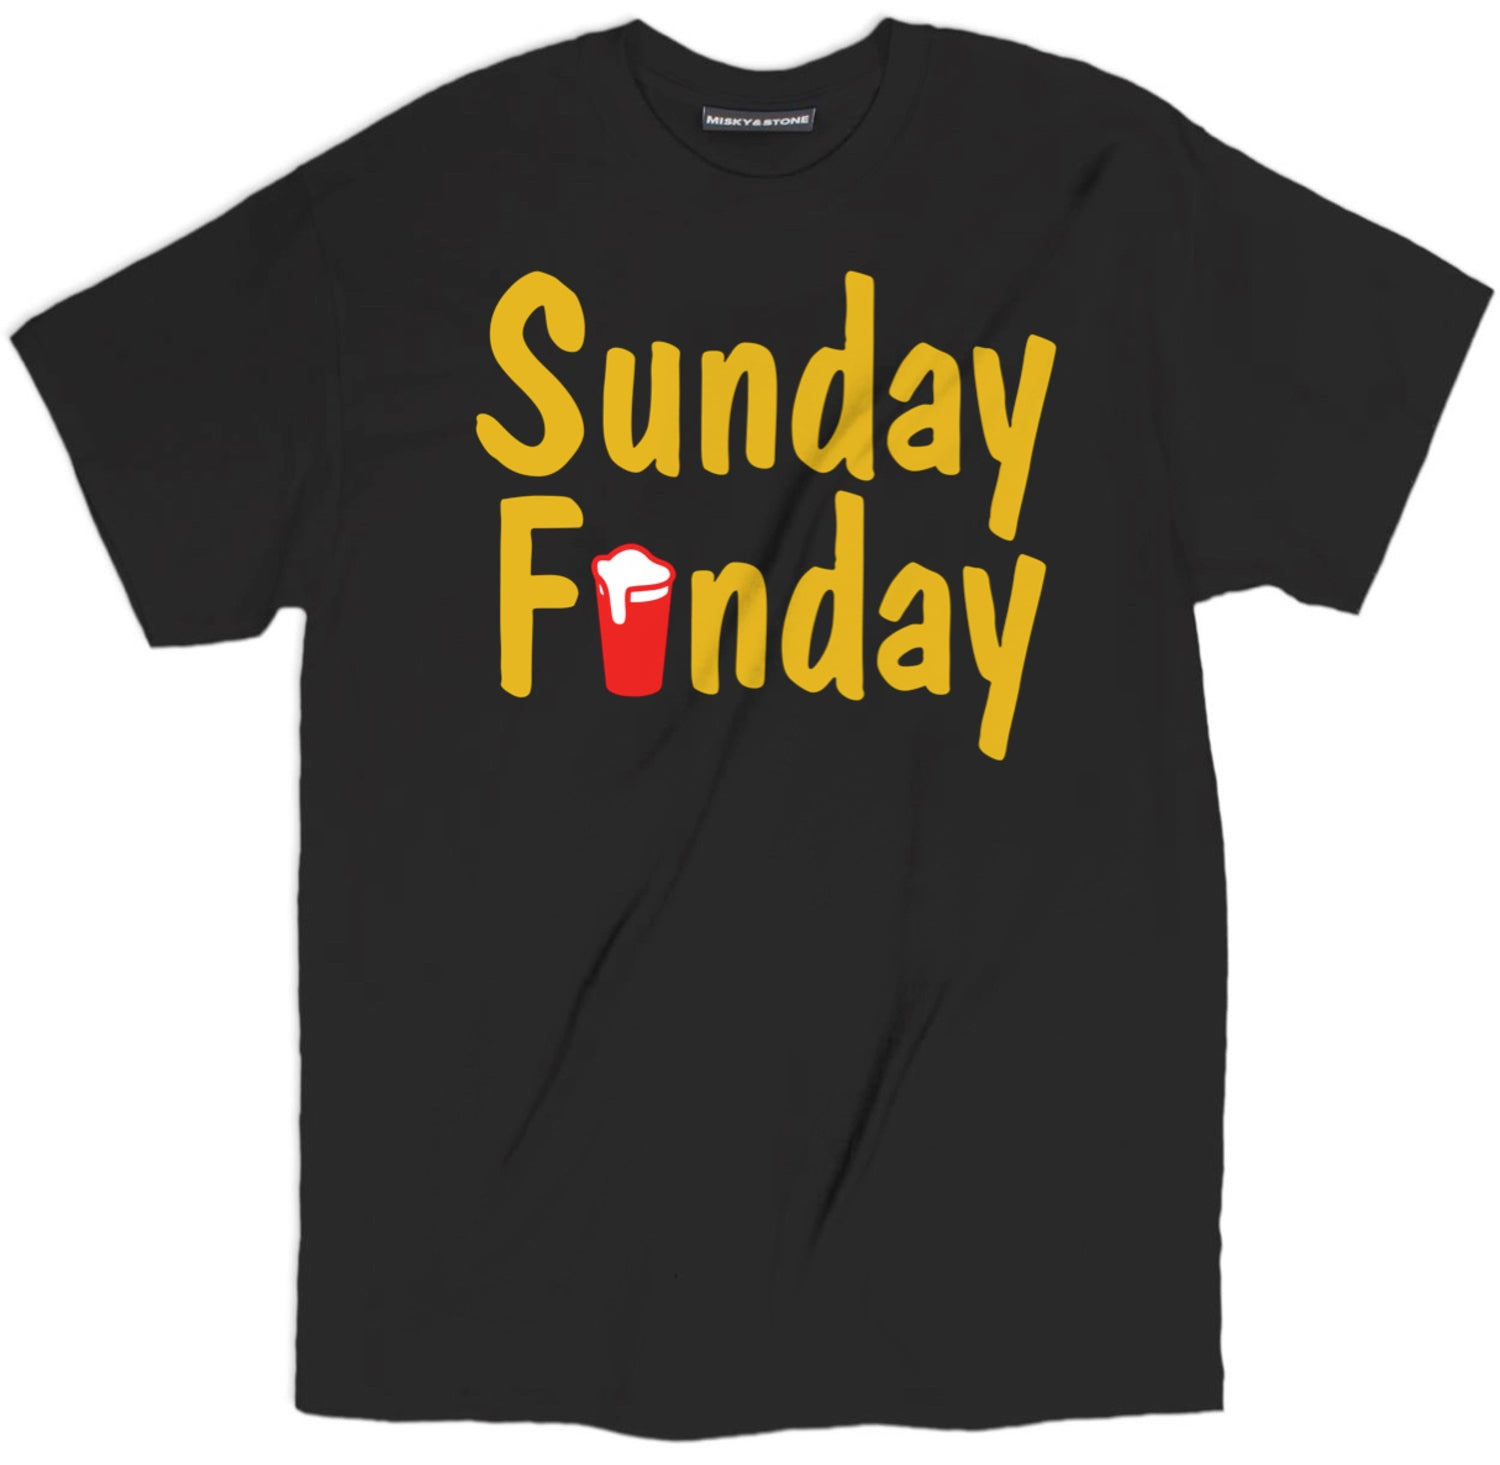 sunday funday t shirt, beer shirts, funny beer shirts, beer tees, beer tee shirts, funny beer t shirts, drinking shirts, alcohol shirts, funny drinking shirts, brewery t shirts, craft beer shirts, craft beer t shirts, heineken t shirt, vintage beer shirts